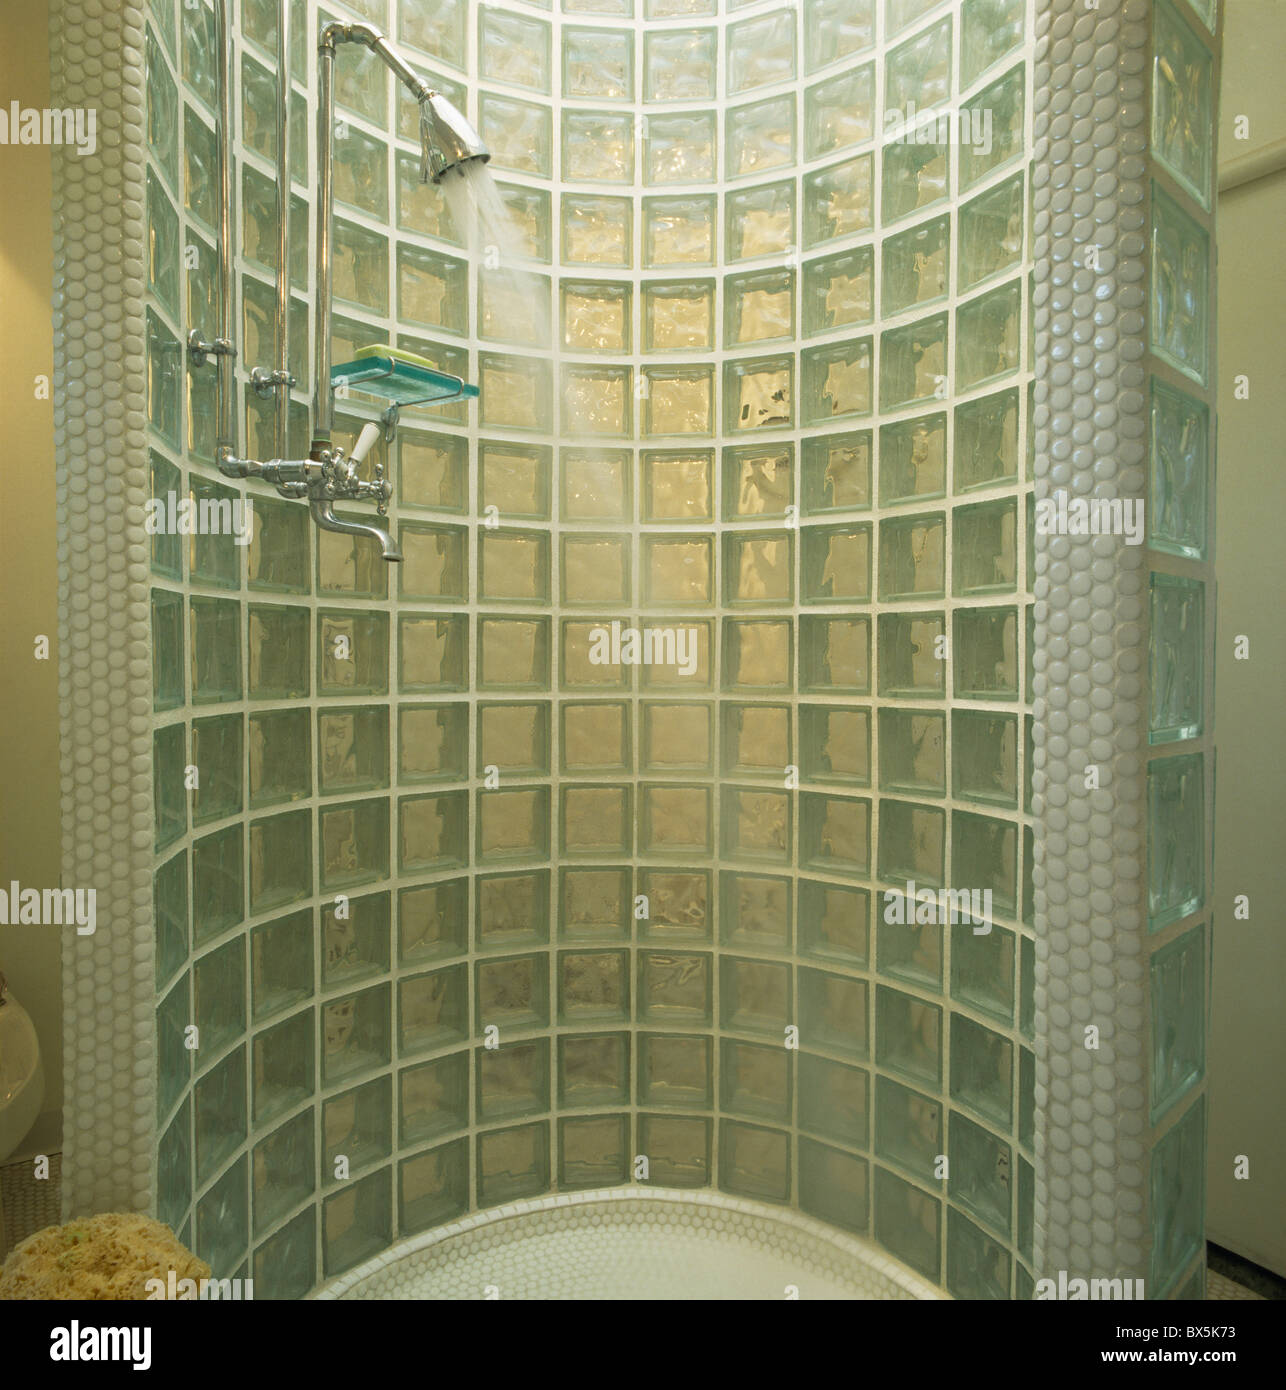 Water Pouring From Chrome Shower In Curved Glass Brick Cabinet